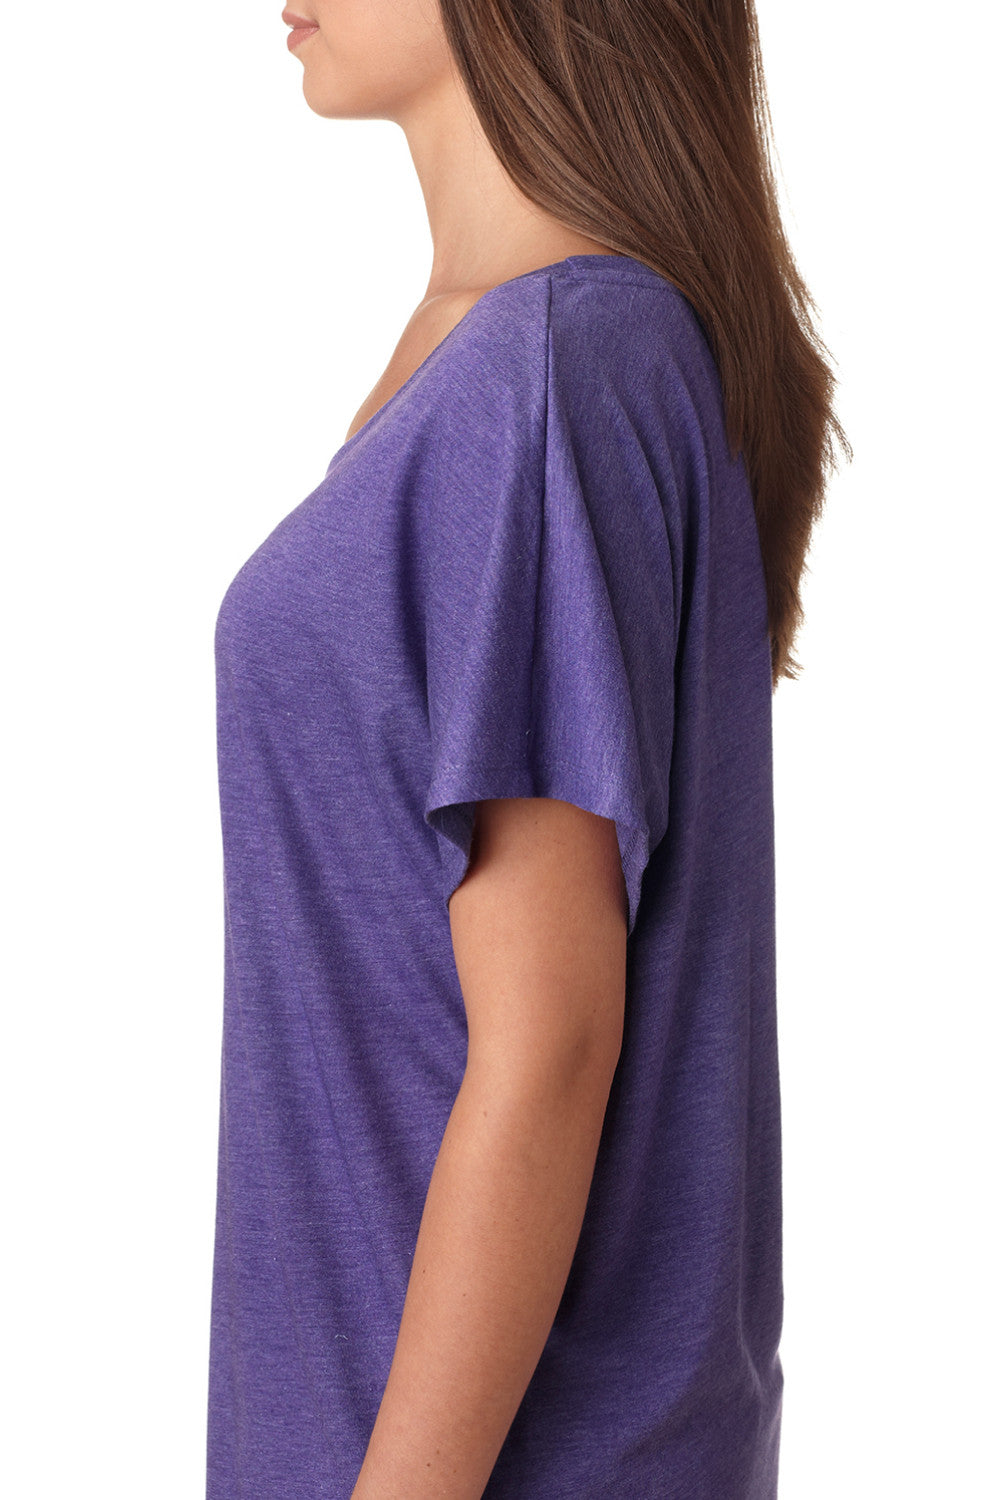 "*Last Chance!* ""Breathe Baby Down"" Dolman Style Shirt in Purple"